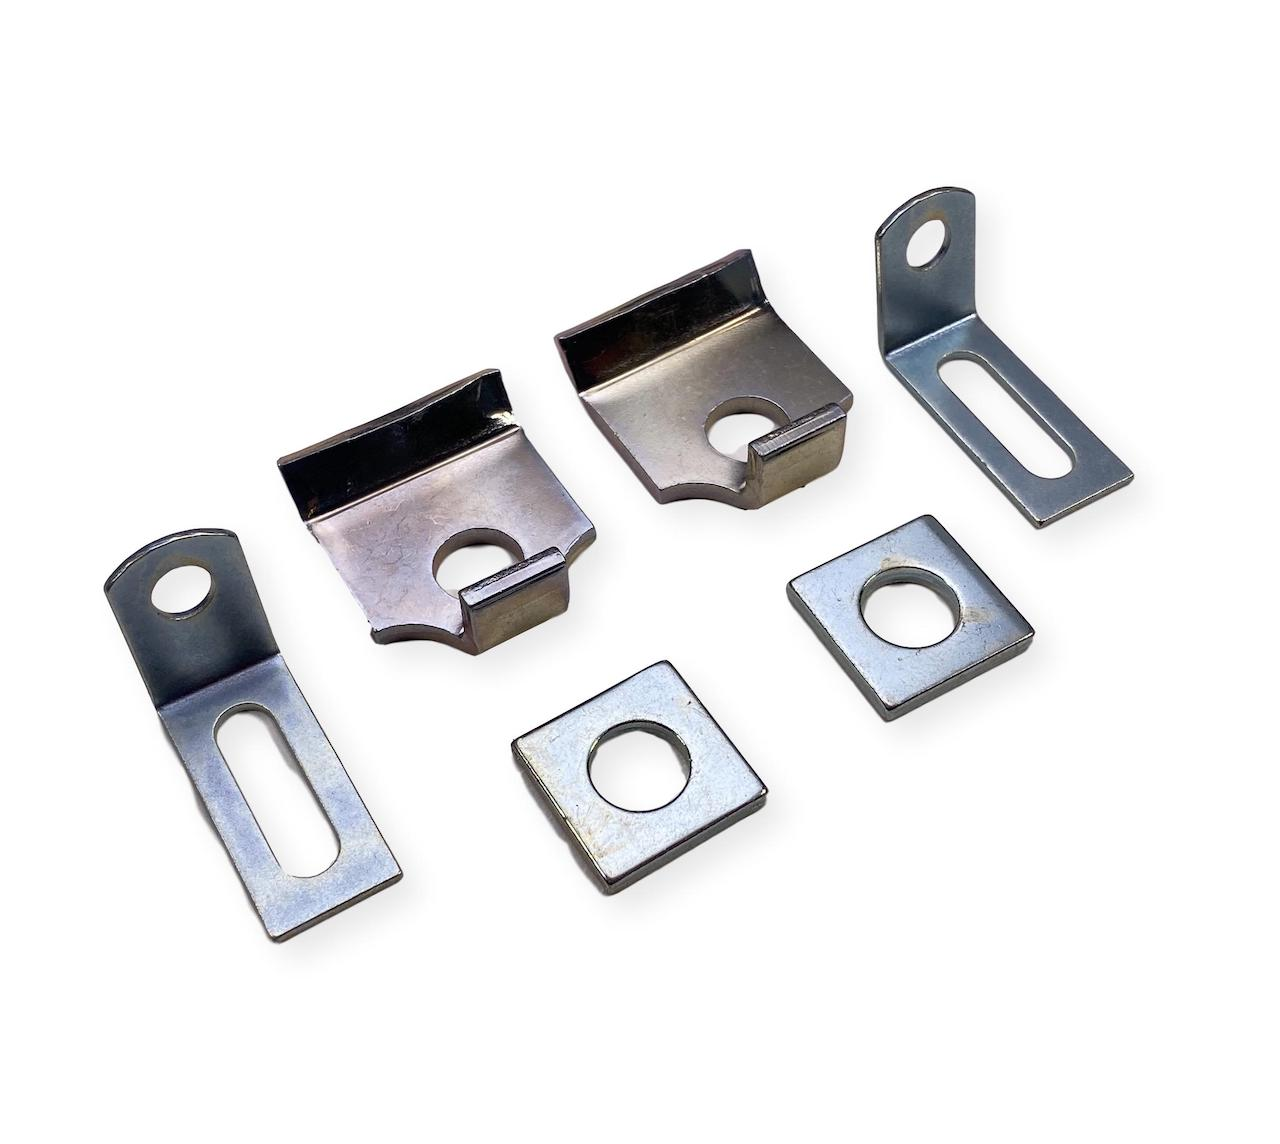 1956 Chevy Accessory Bumper Grille Guard Hardware Kit